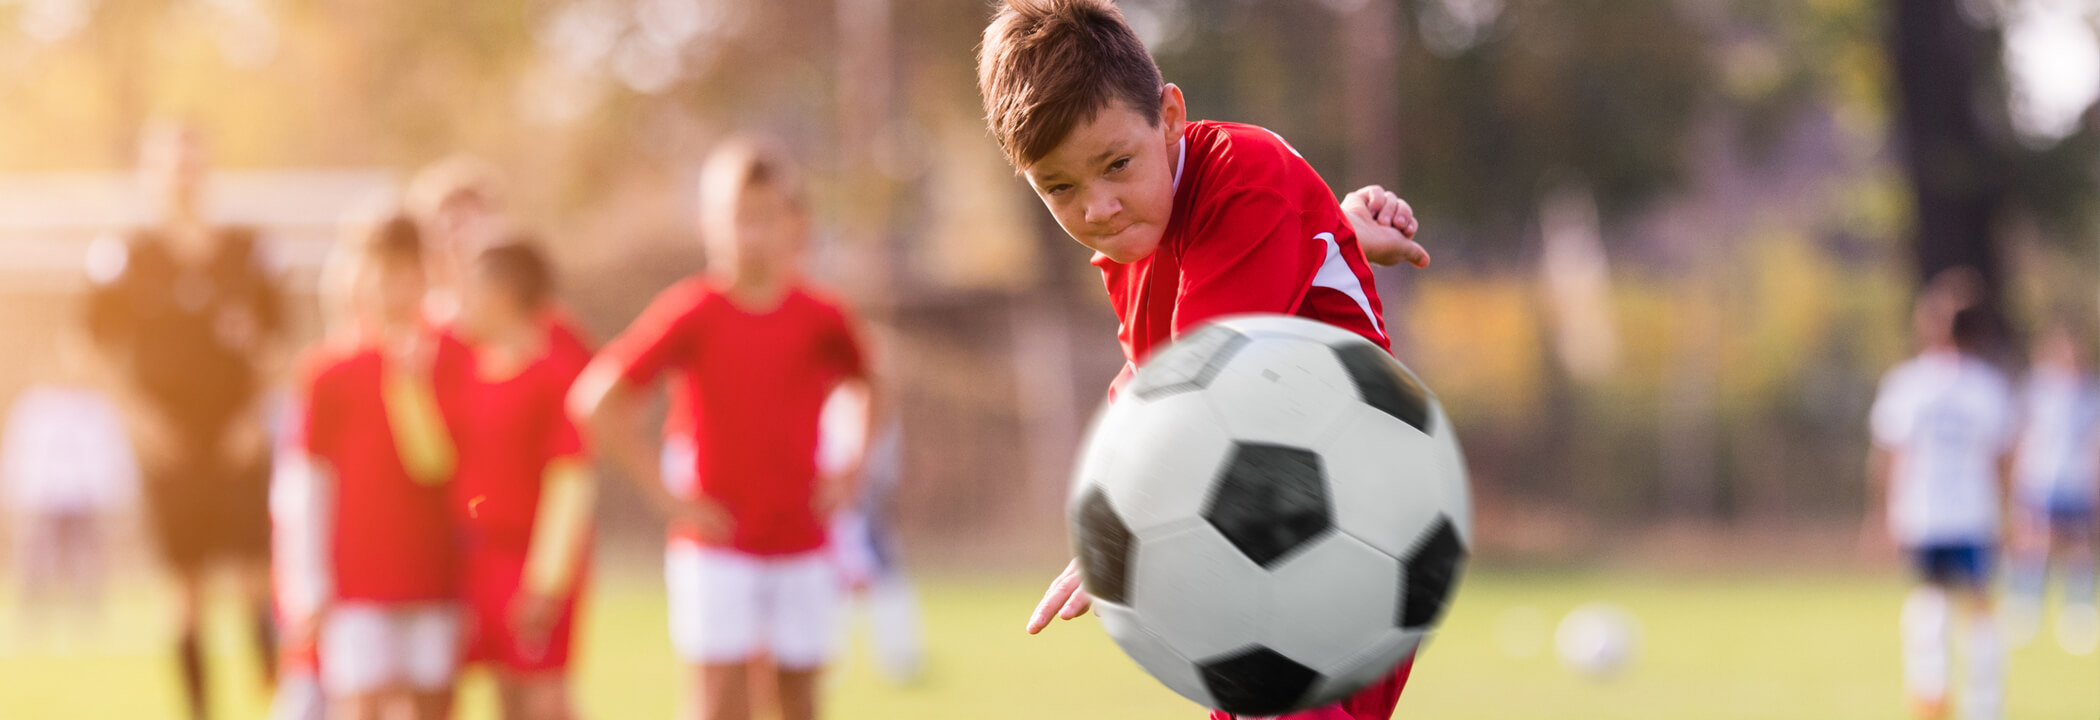 sports-vision-training-children-soccer_CROP